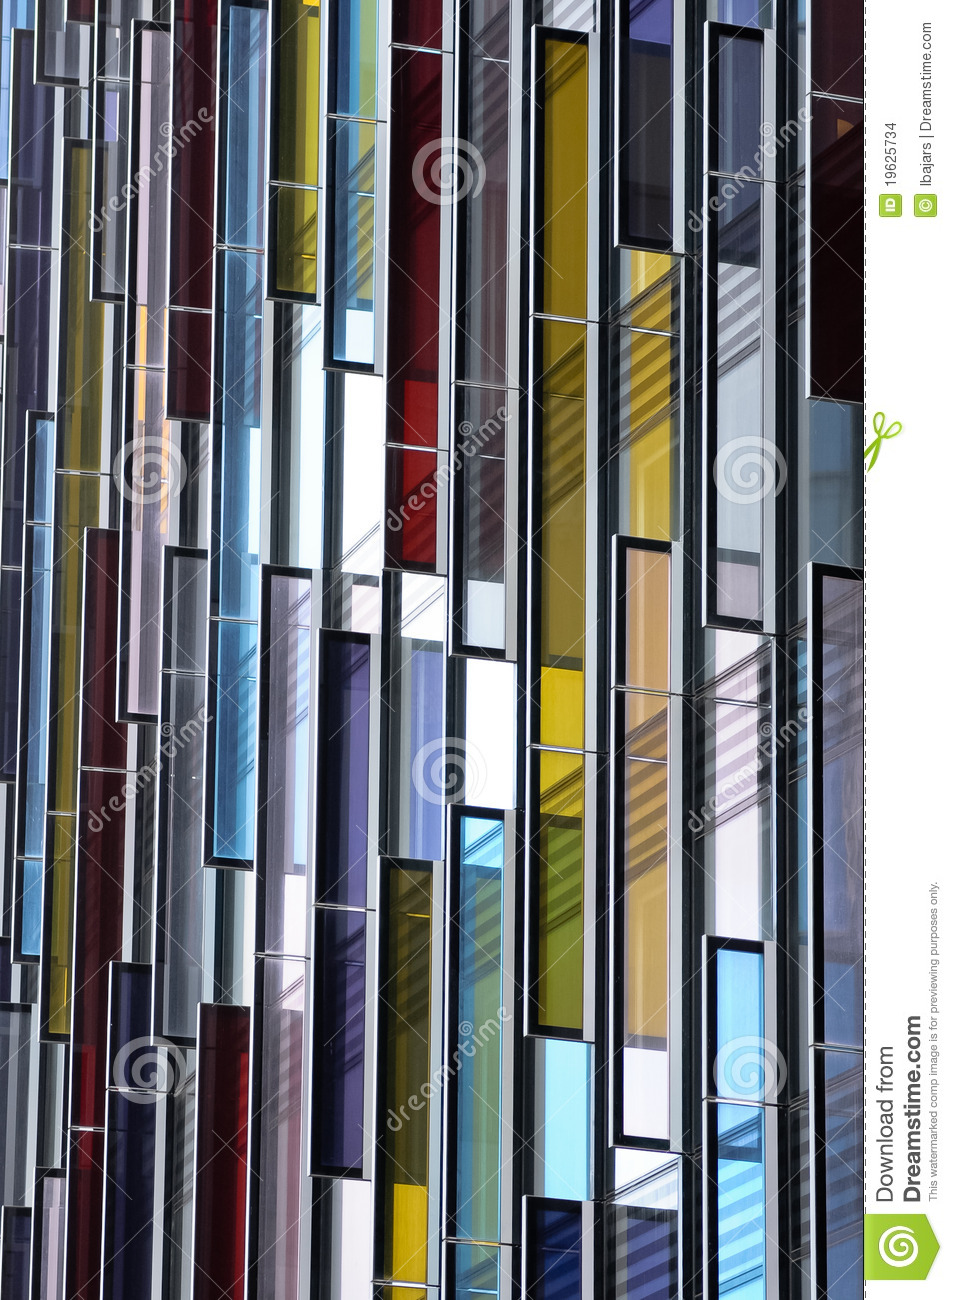 Fa ade en verre color e abr g sur architecture images for Architecture en verre